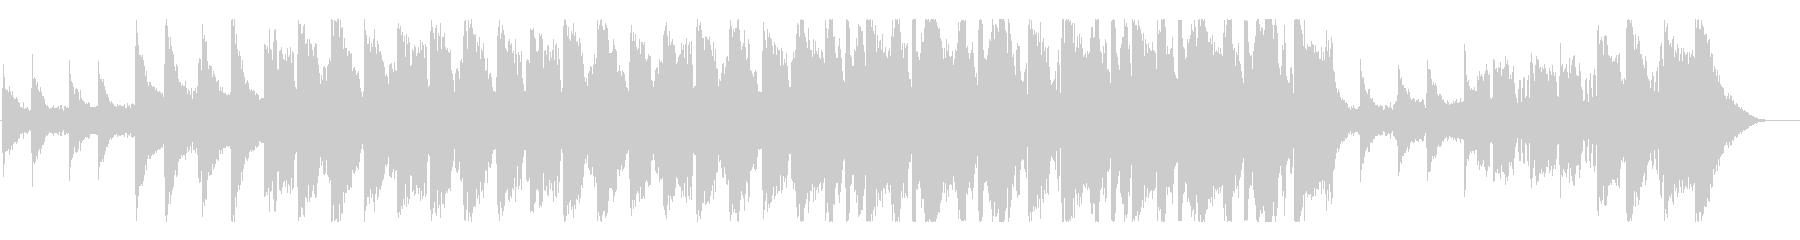 BGM of a beautiful melody with transparency's unreproduced waveform